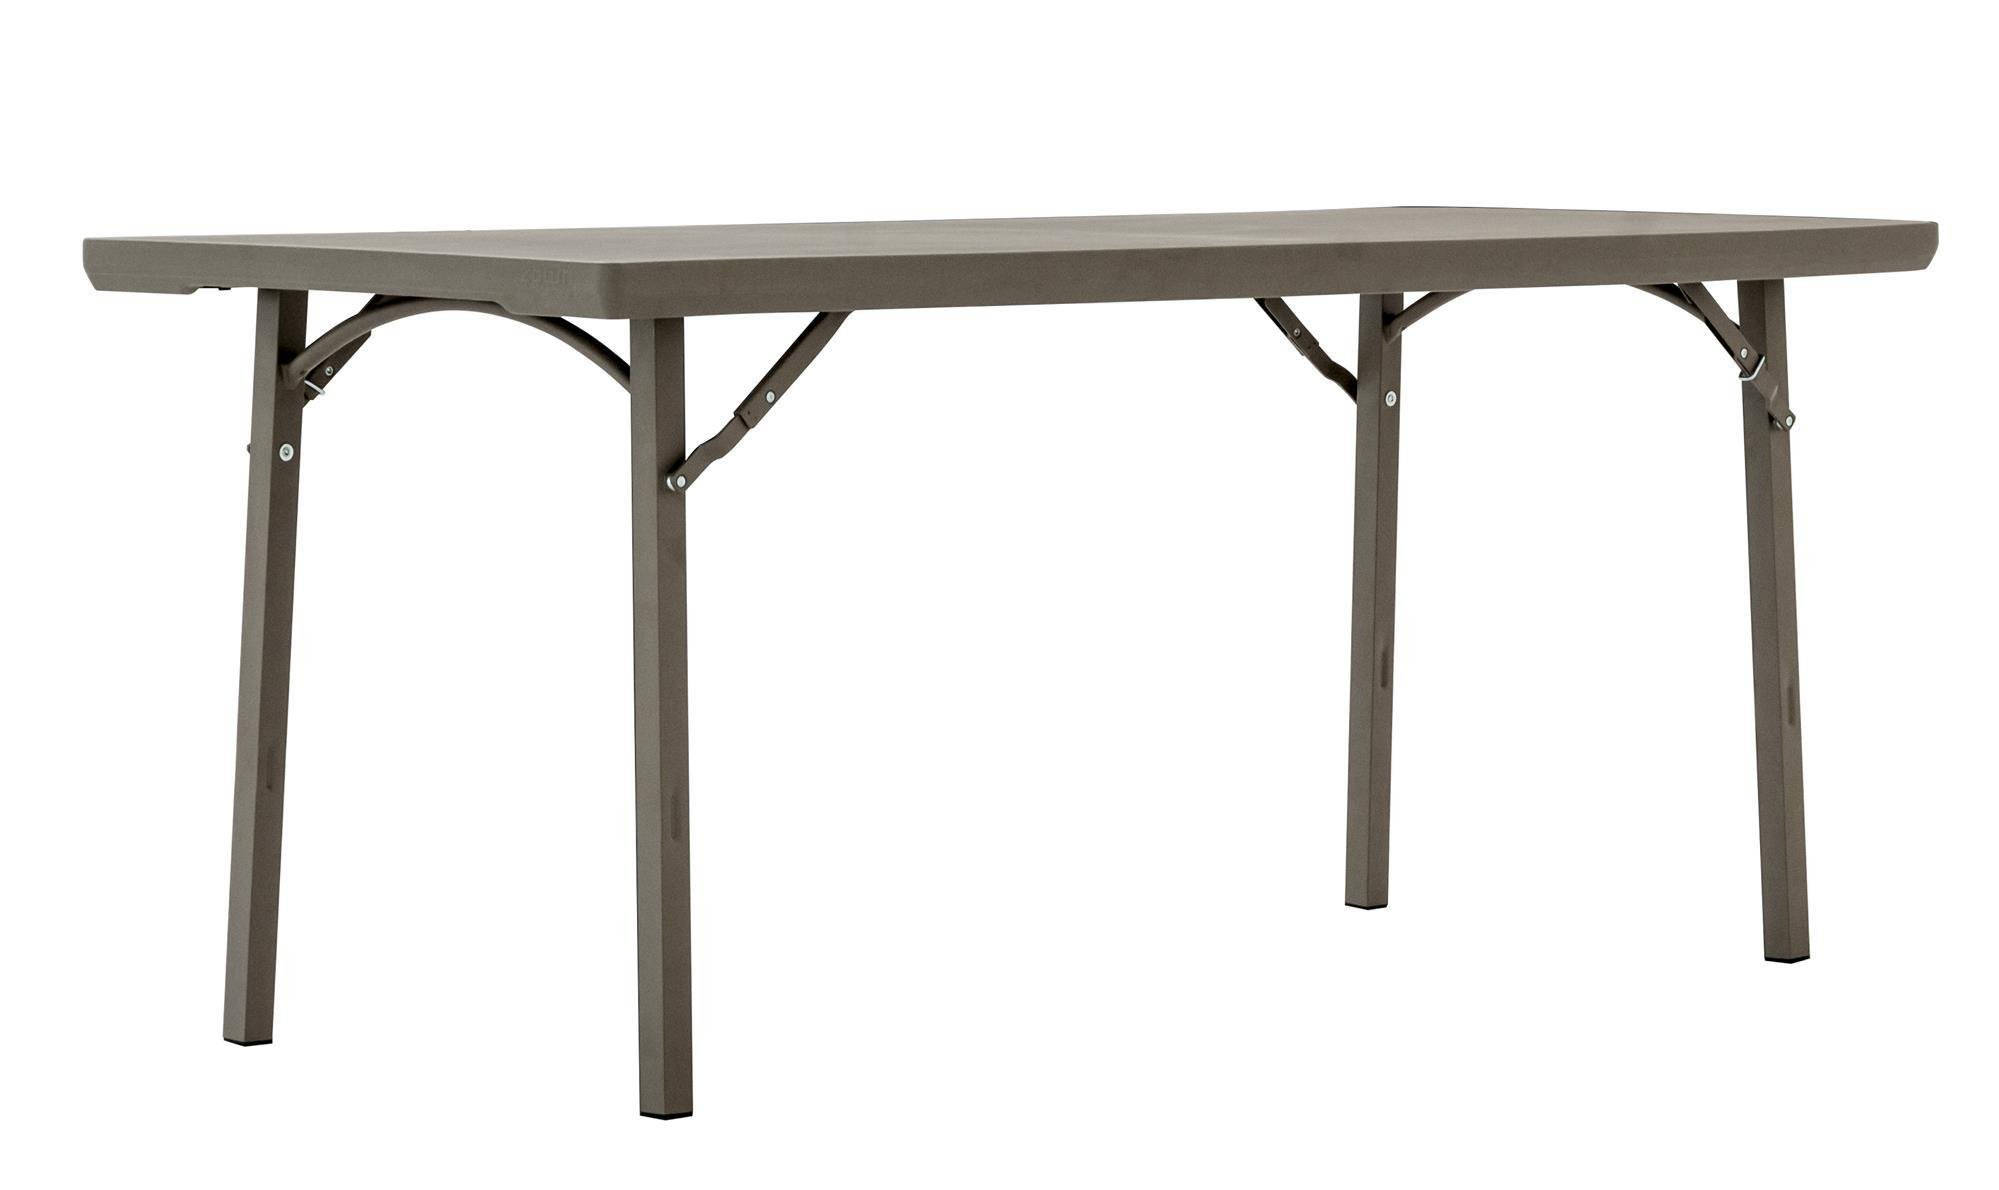 Cosco Commercial Folding Table, 6'